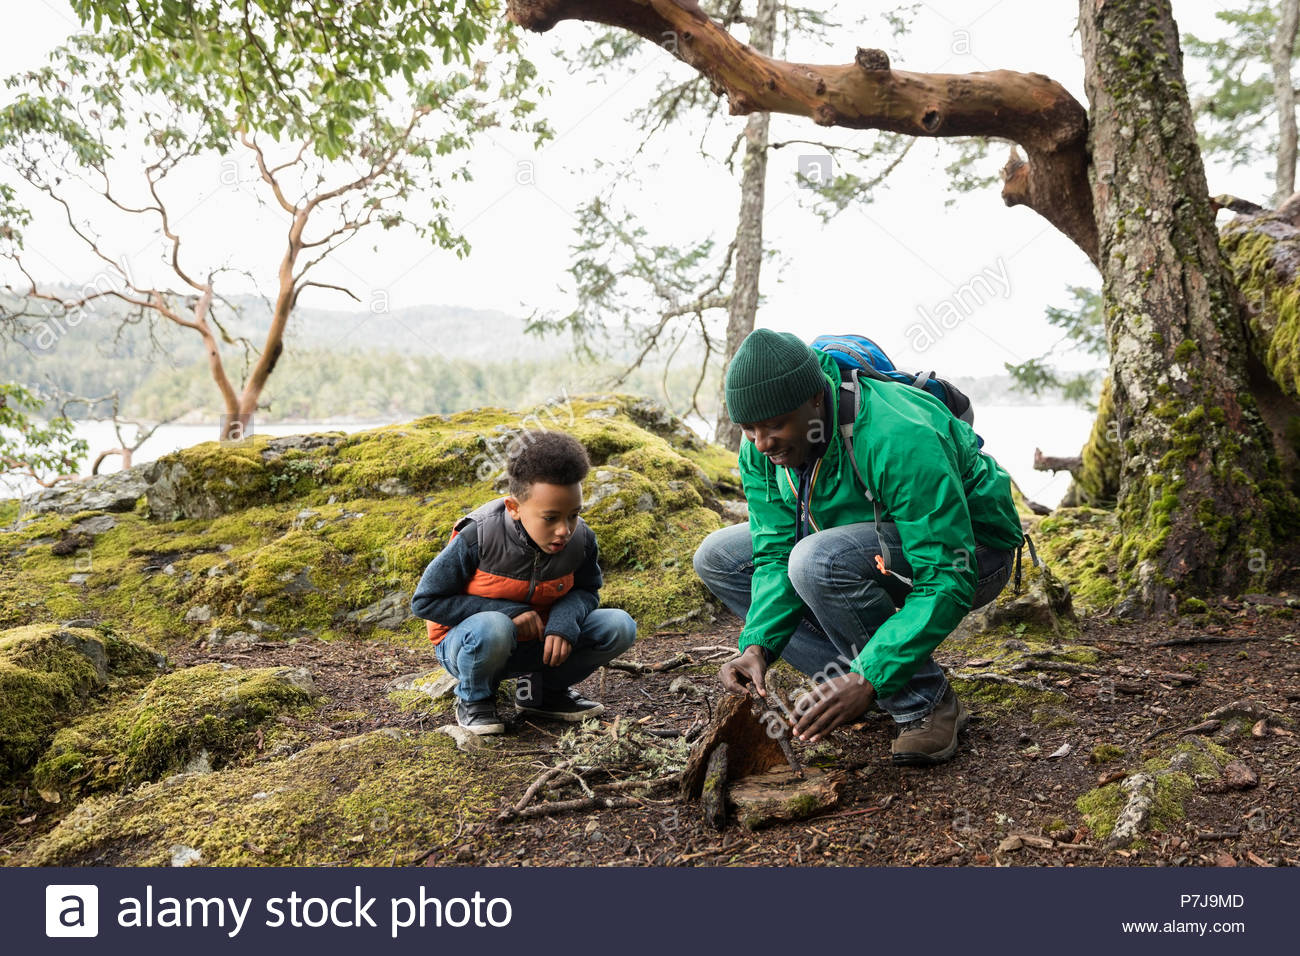 Father and son building campfire in woods - Stock Image